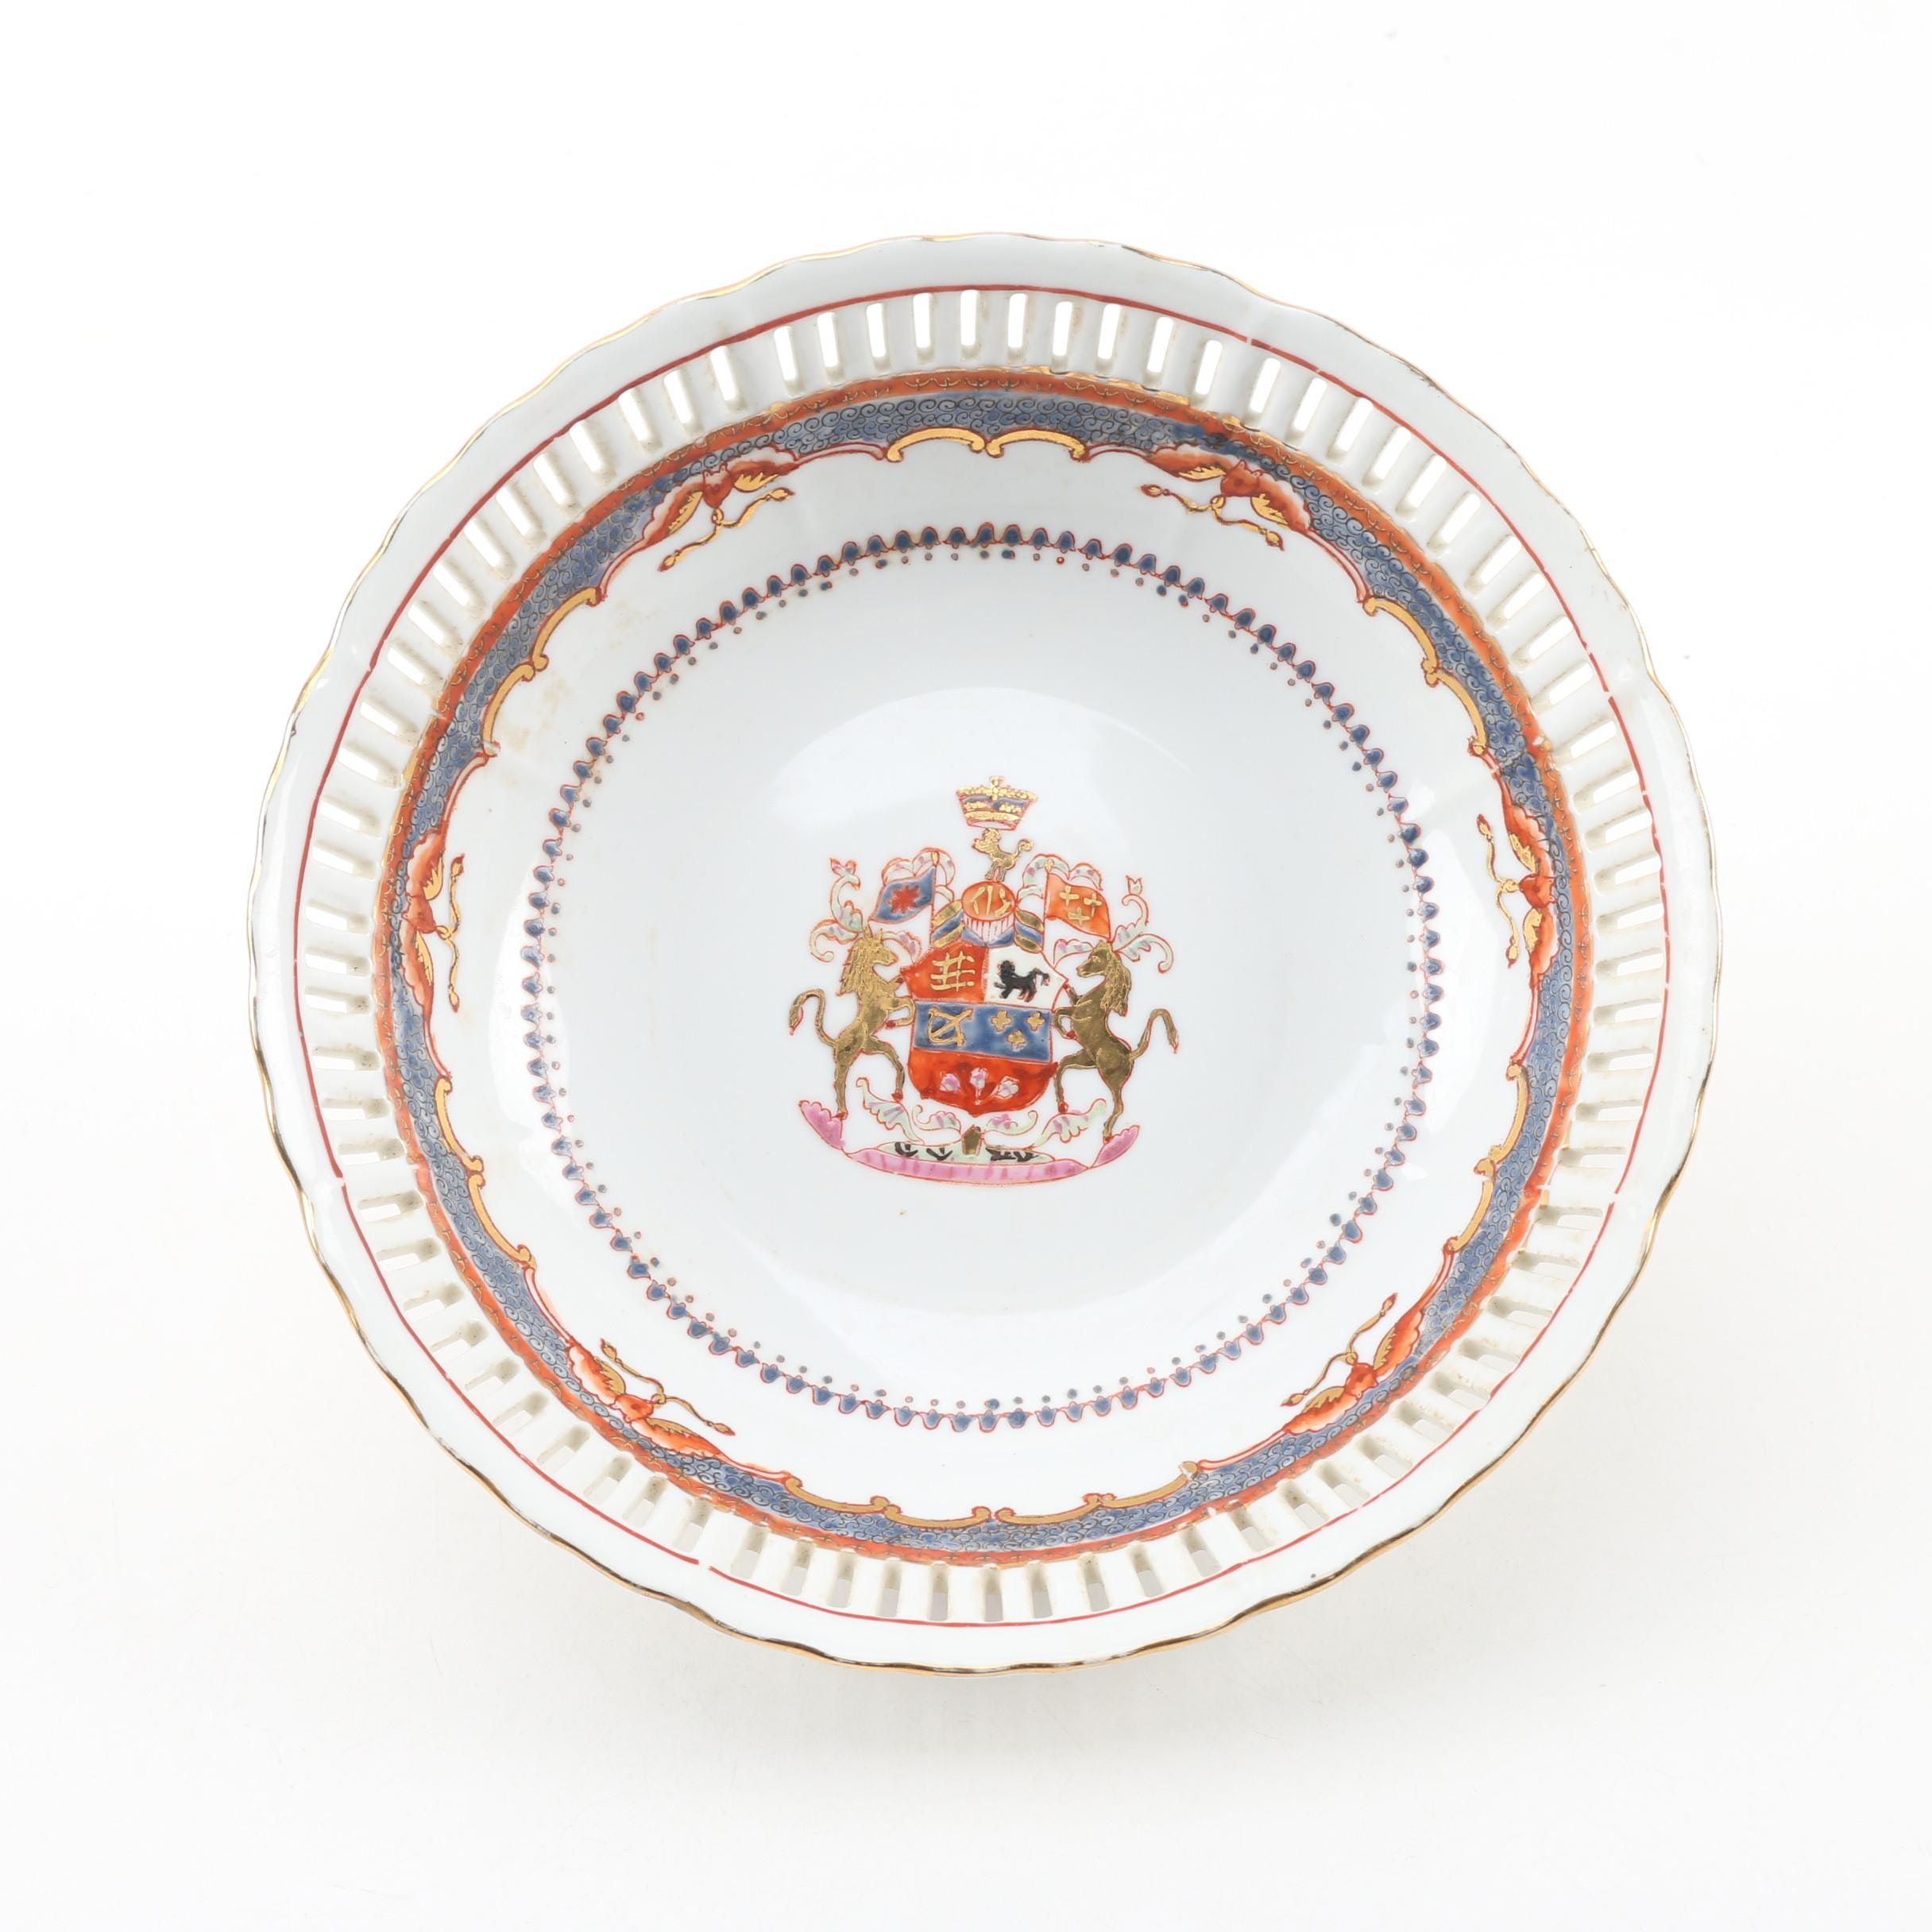 Chinese Reticulated Export Style Porcelain Bowl with Coat of Arms